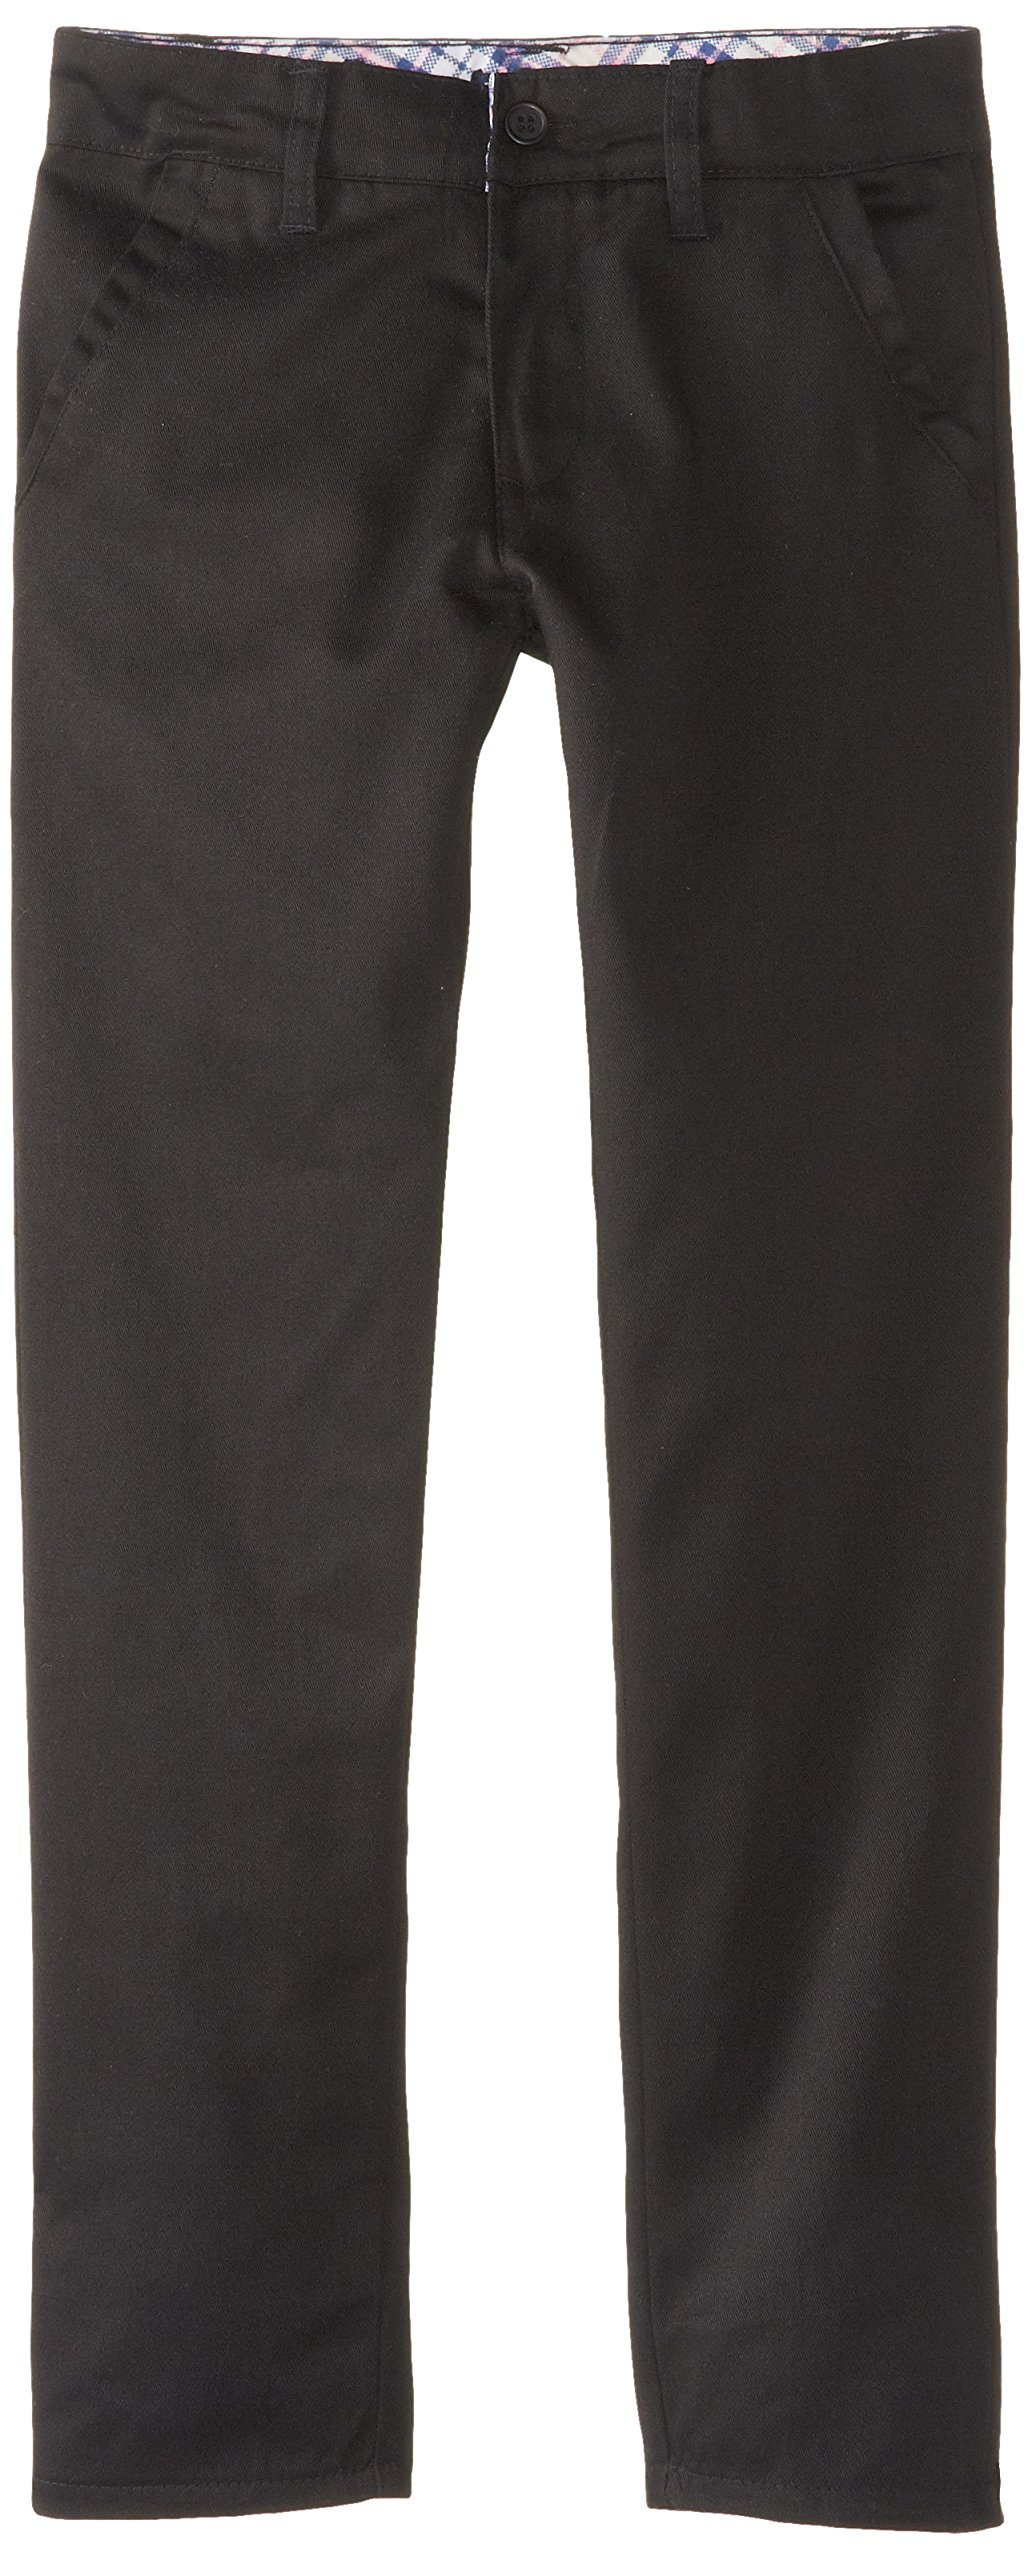 U.S. Polo Assn. Big Girls' Twill Pant (More Styles Available), Skinny Black-IJVCA, 10